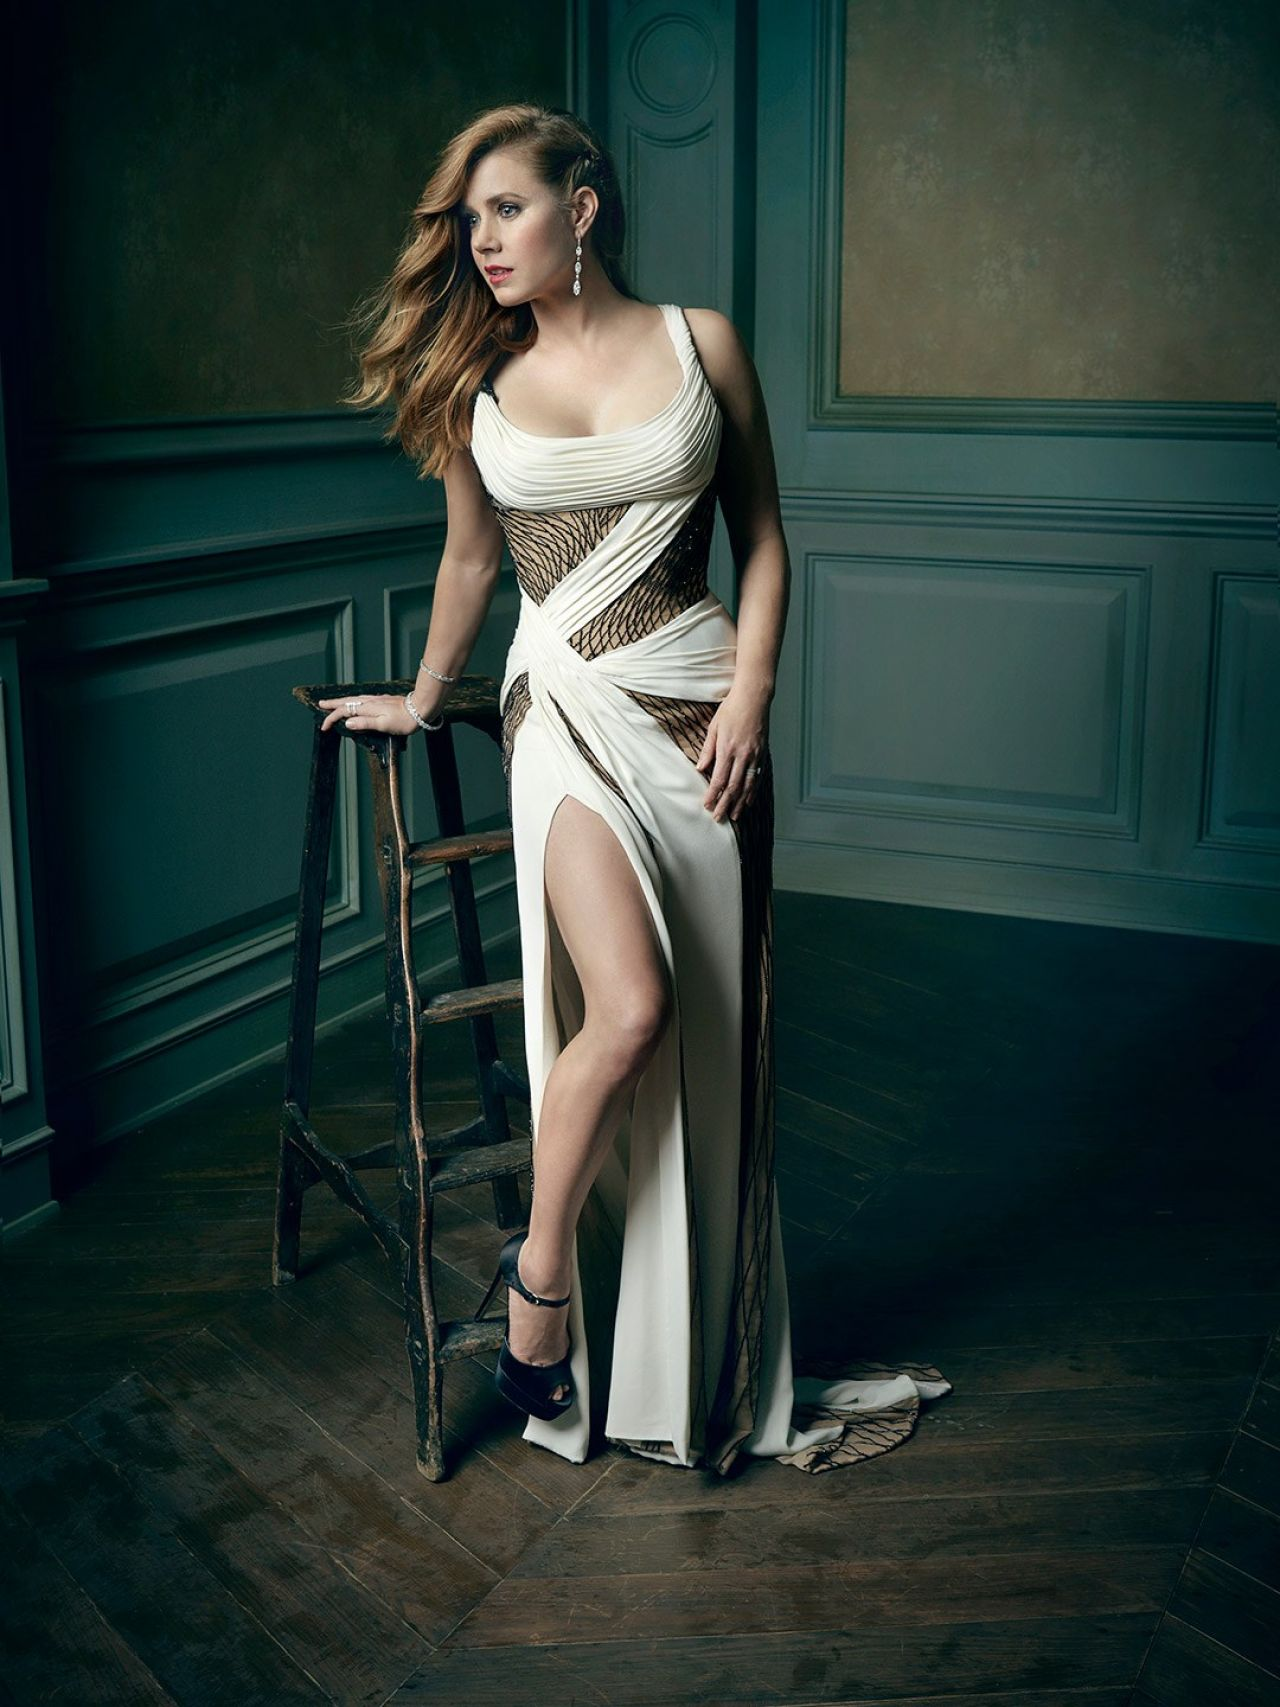 Amy Adams Complete Nude Picture Sets NSFW